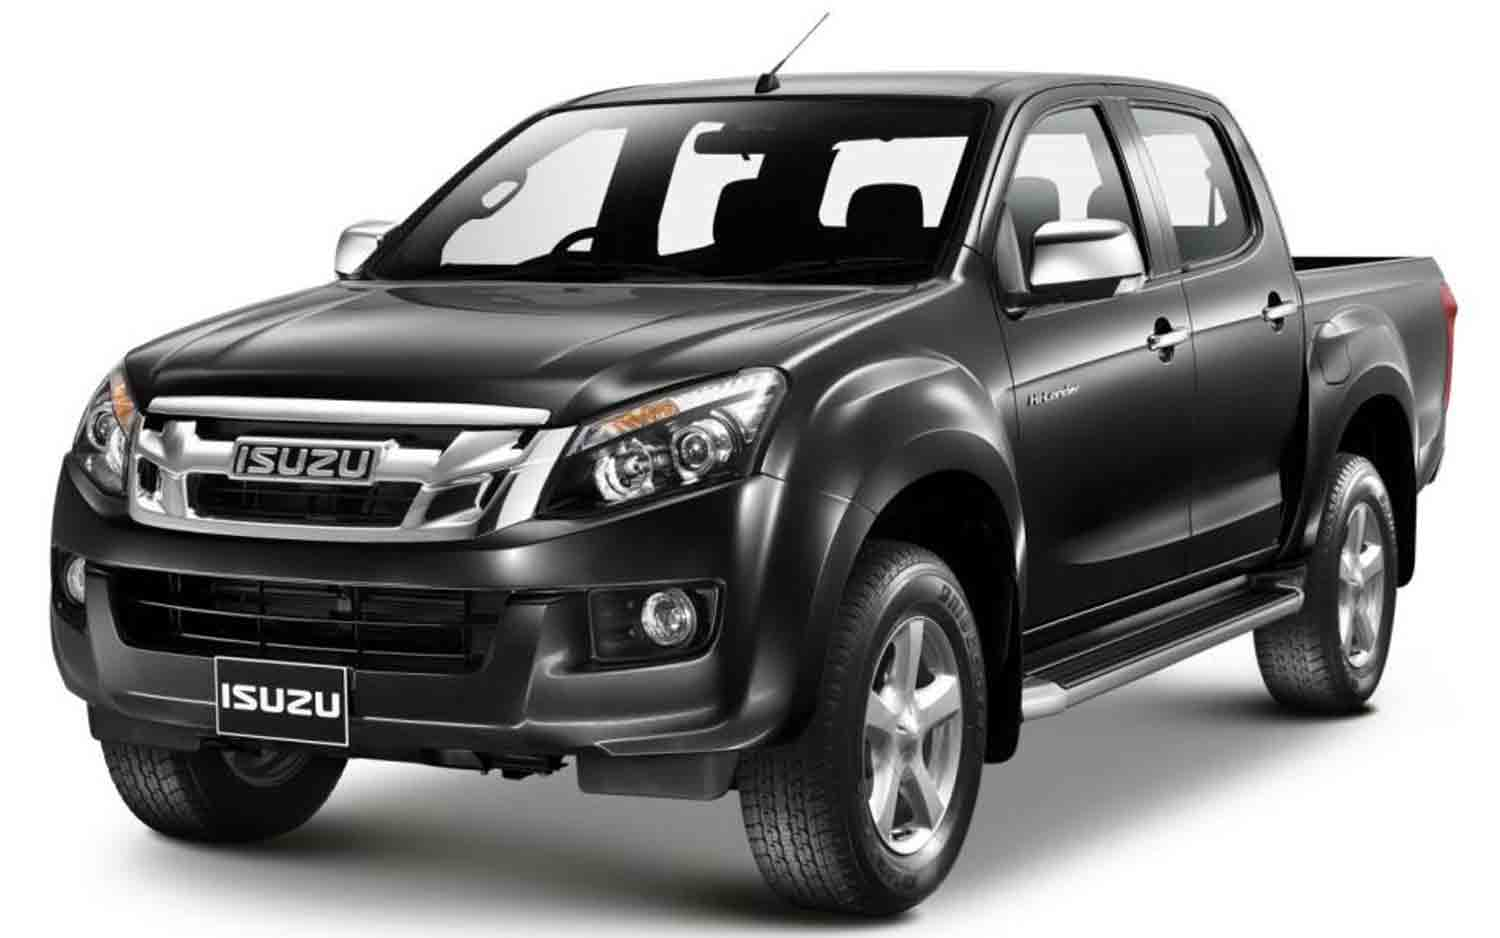 cool car wallpapers isuzu cars 2013. Black Bedroom Furniture Sets. Home Design Ideas